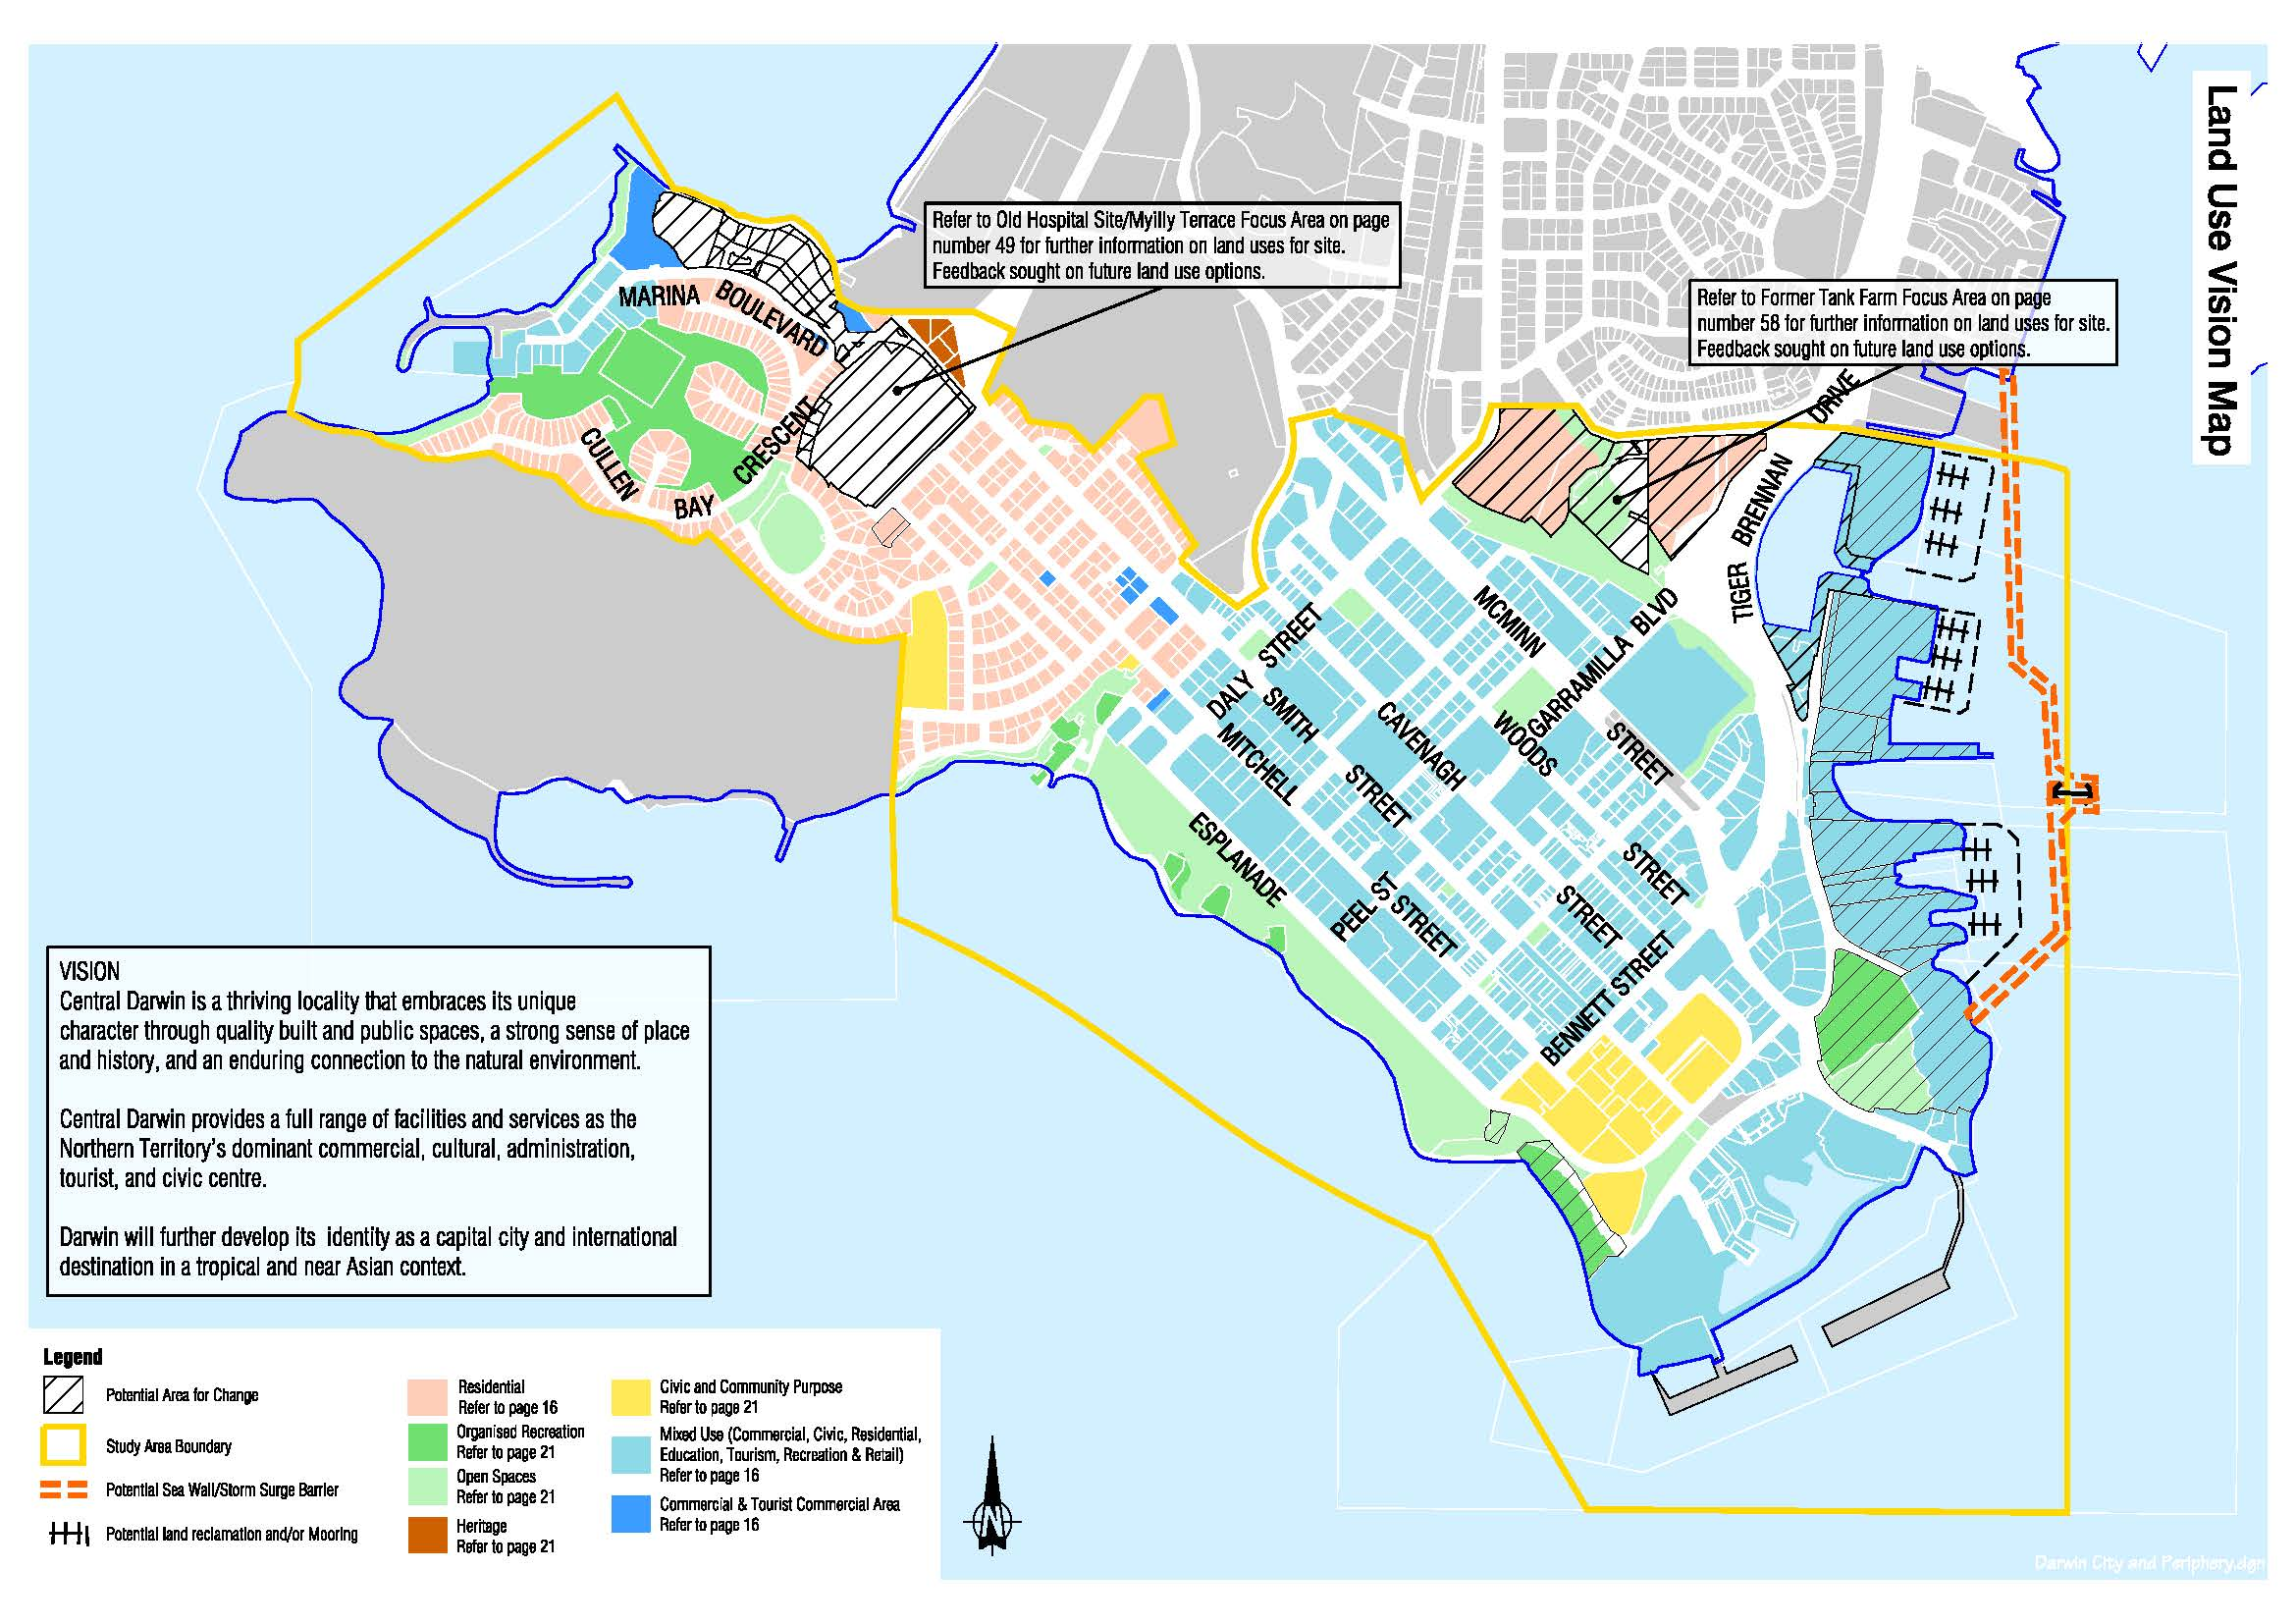 Land Use Vision Map for Central Darwin